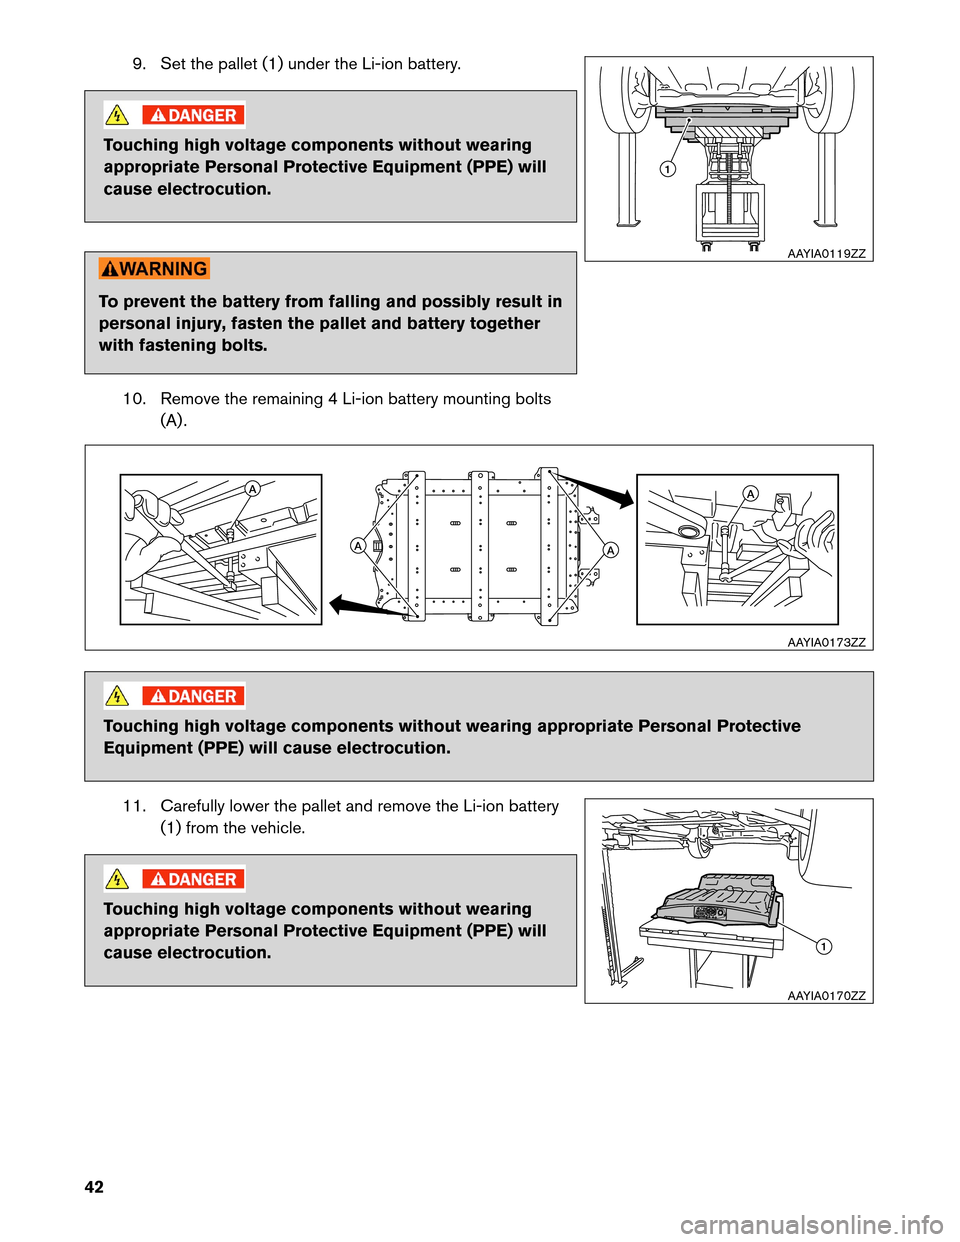 NISSAN LEAF 2013 1.G Dismantling Guide 9. Set the pallet (1) under the Li-ion battery. Touching high voltage components without wearing appropriate Personal Protective Equipment (PPE) will cause electrocution. To prevent the battery from f